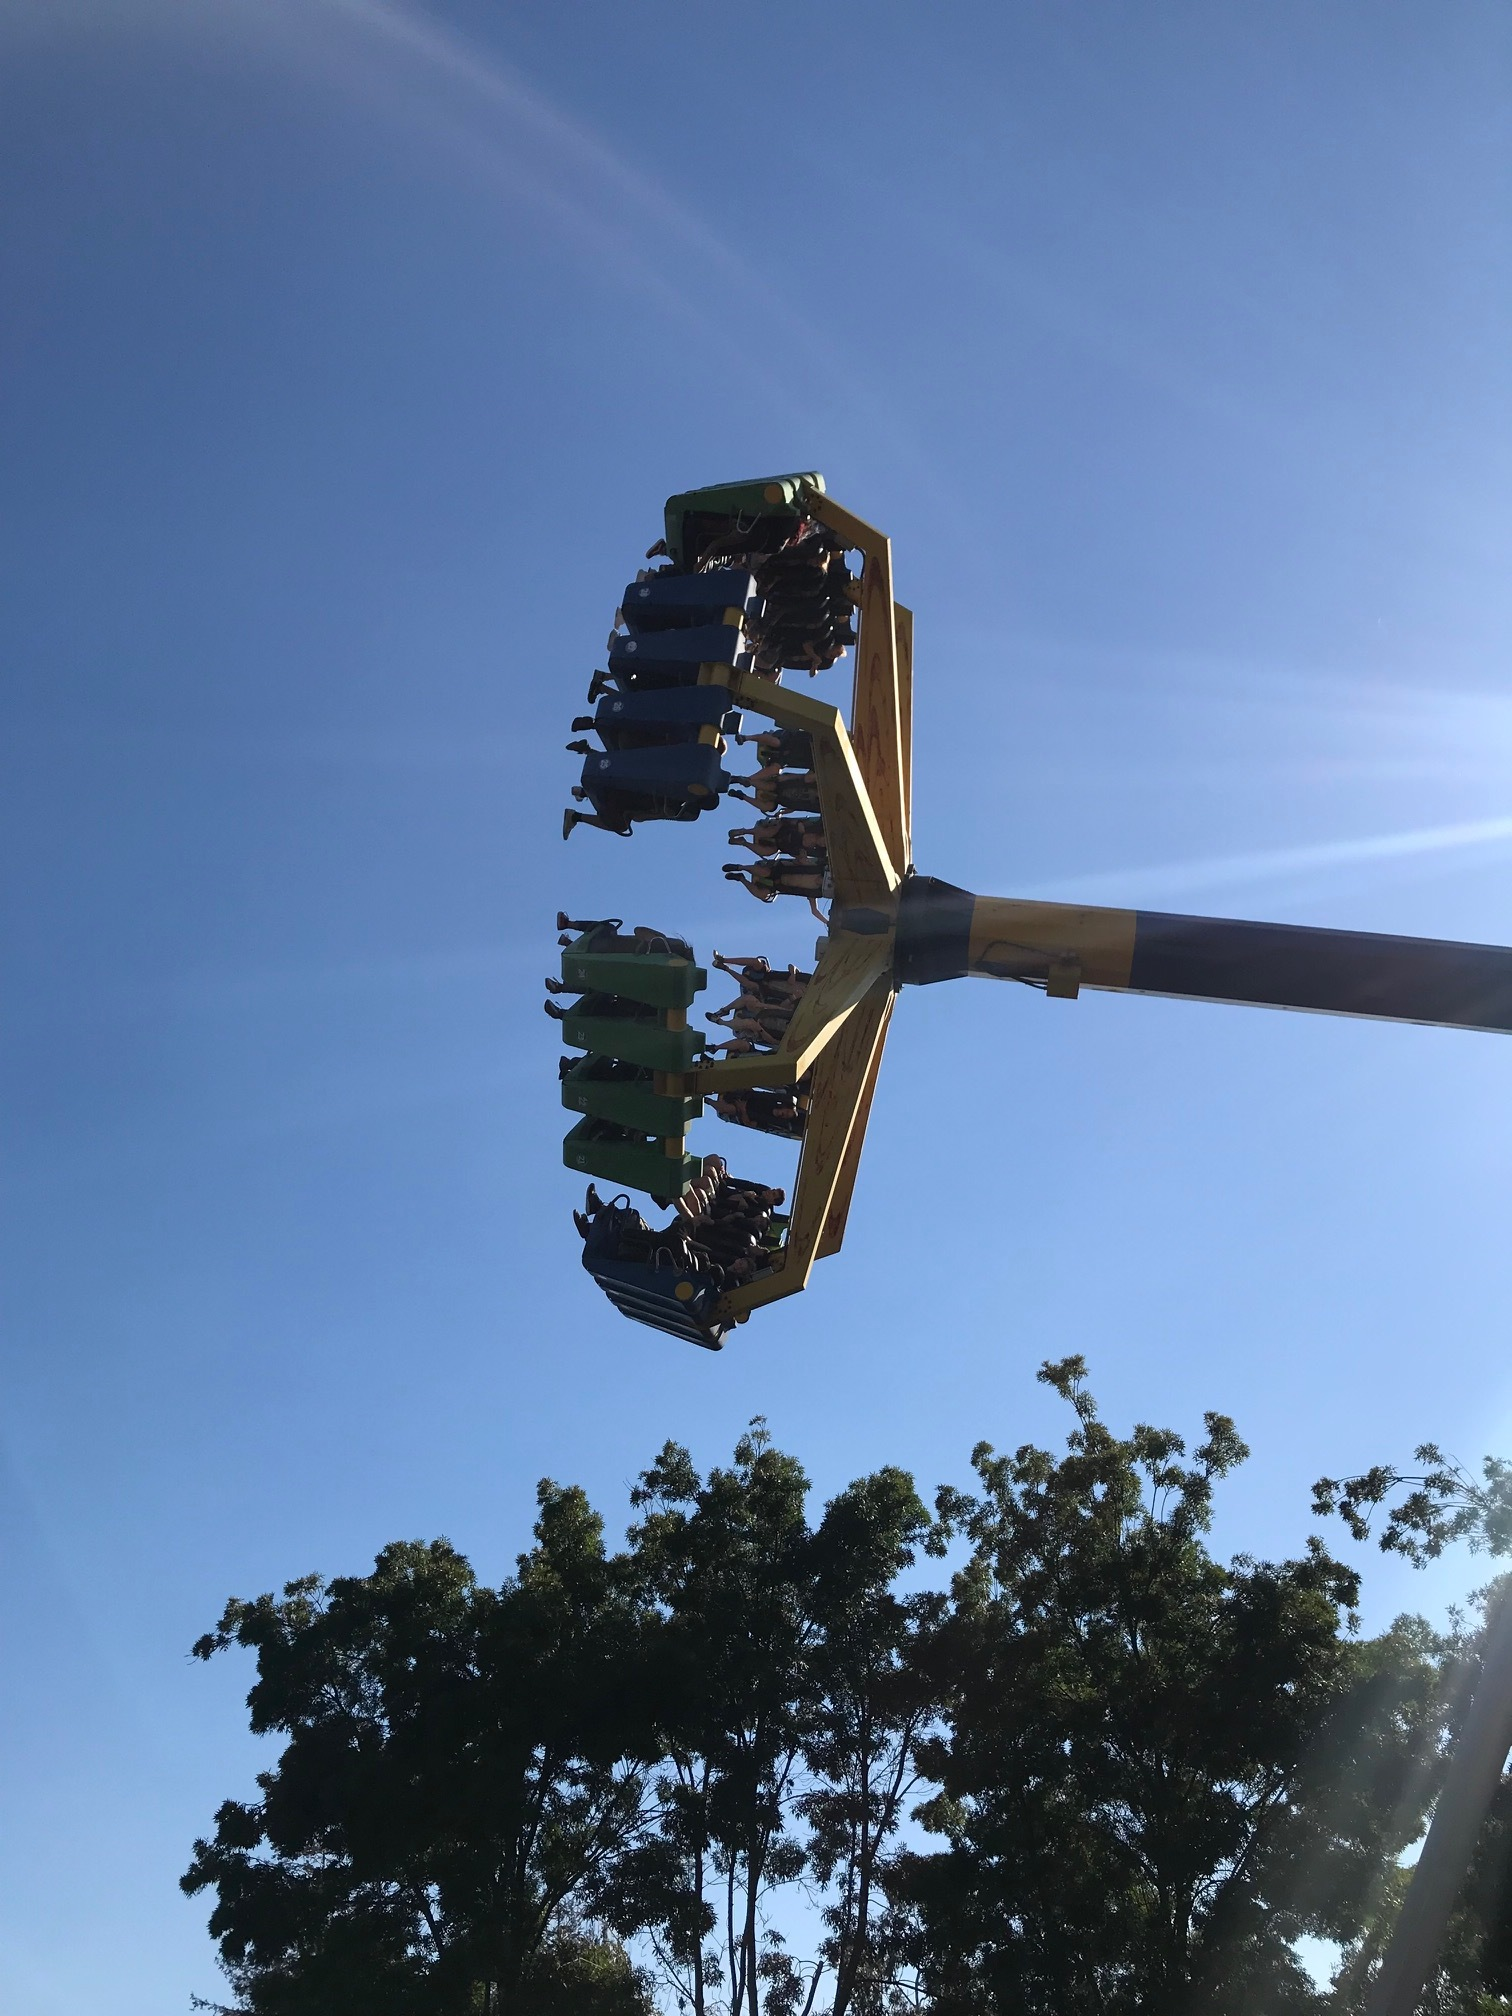 Members of the lab go vertical at Great America; Scott becomes ill just watching this - 27 July 18